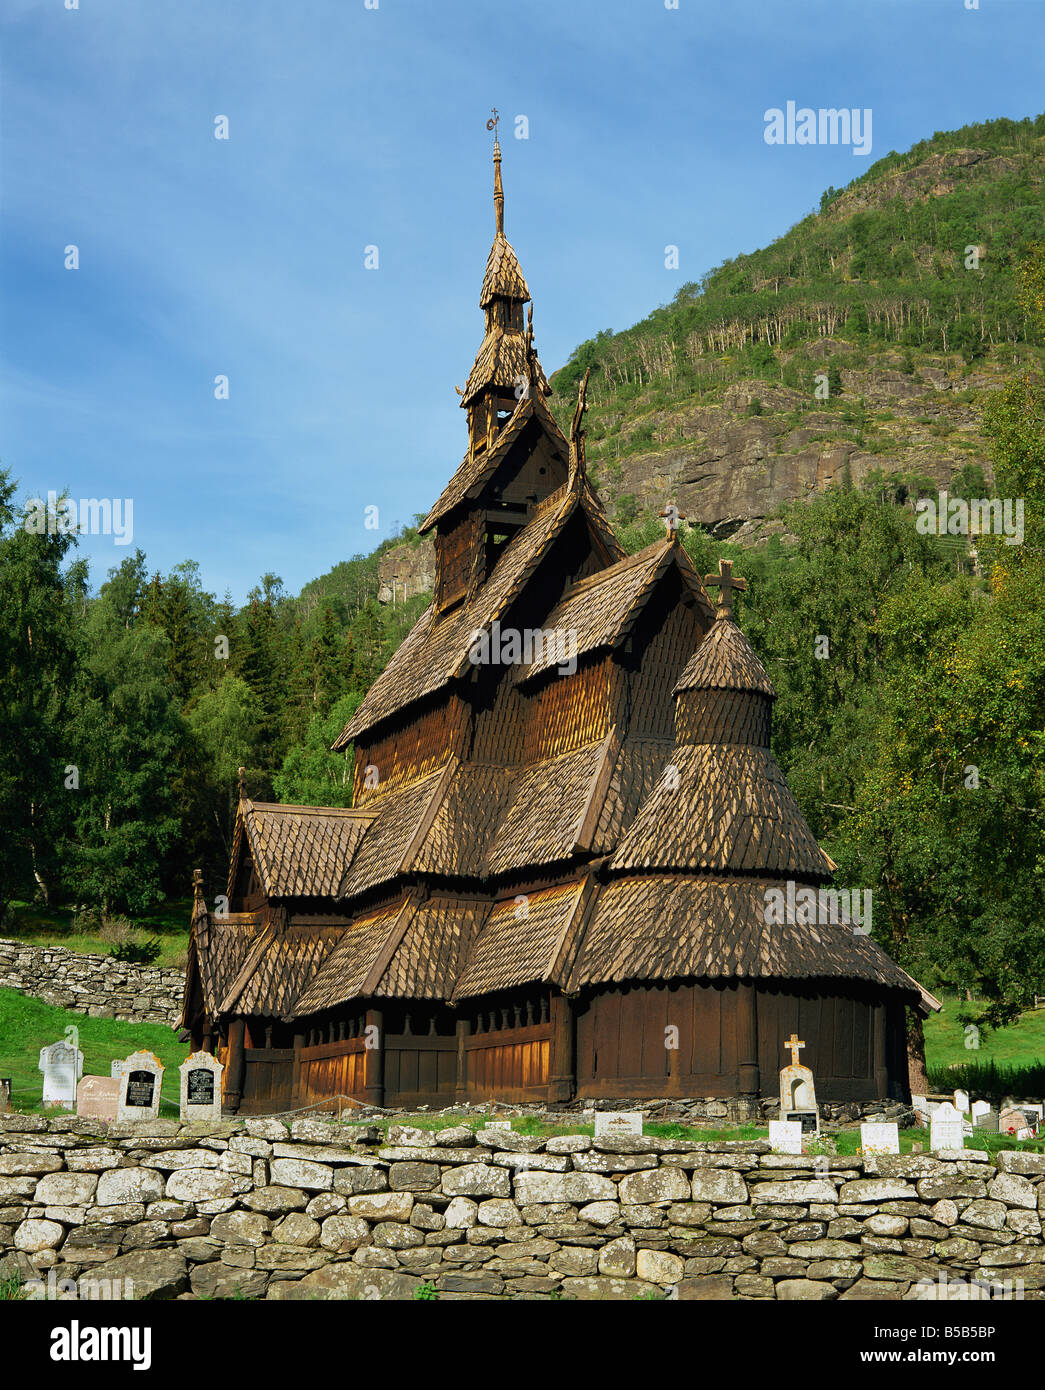 Best preserved 12th C Stave Church in Norway Borgund Stave Church Western Fjords Norway G Hellier - Stock Image